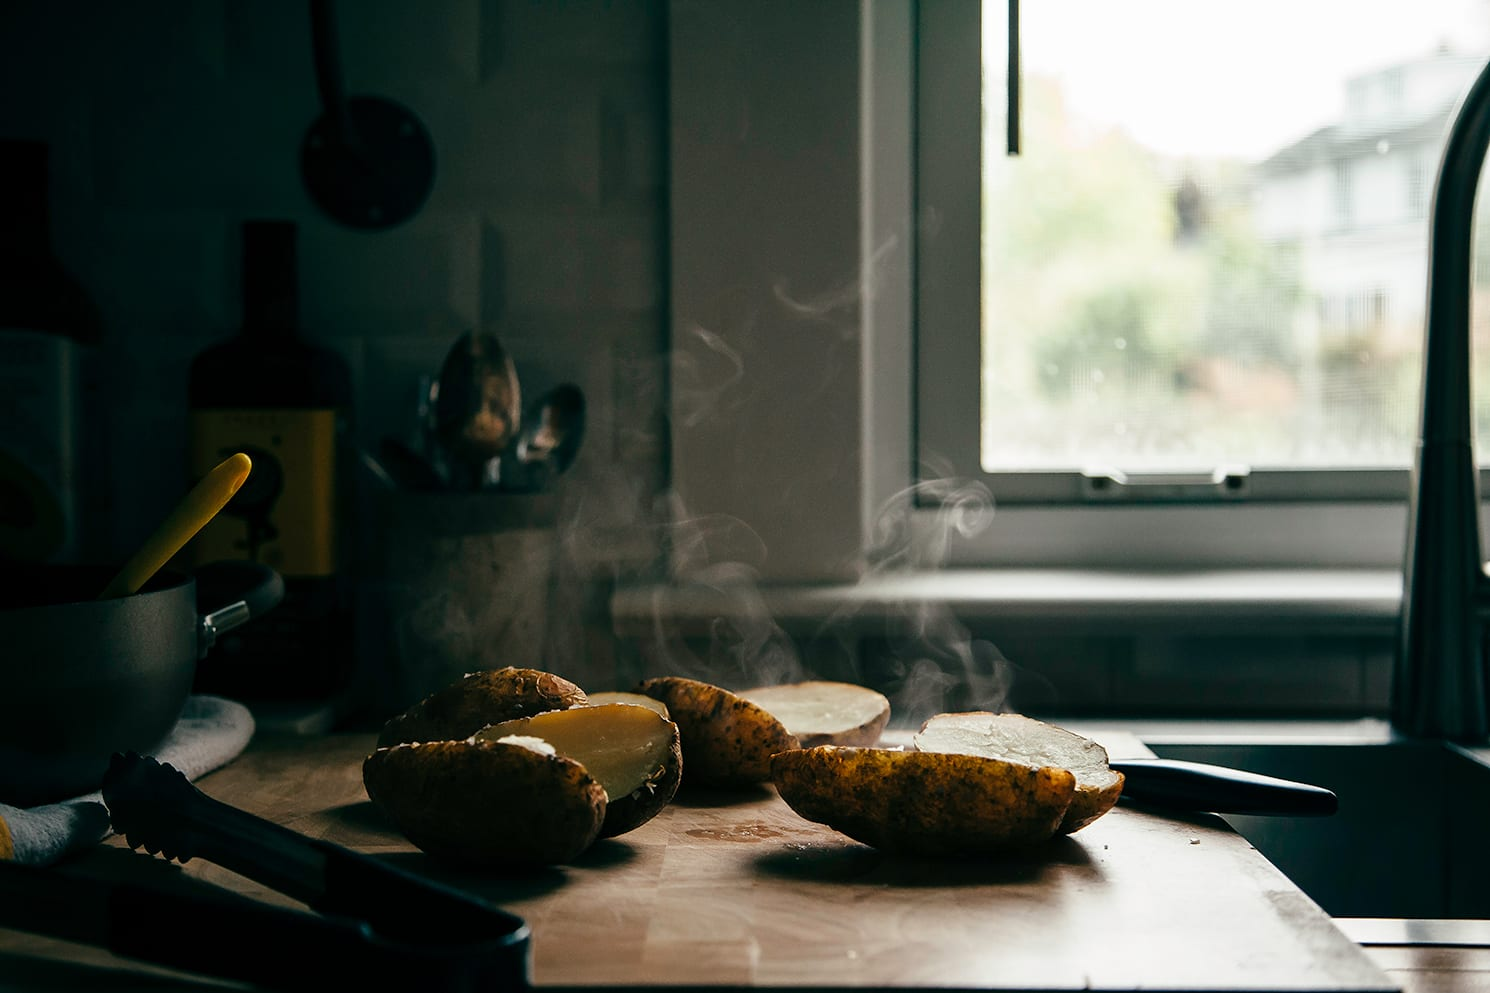 Image shows steaming, split open baked potatoes on a cutting board.